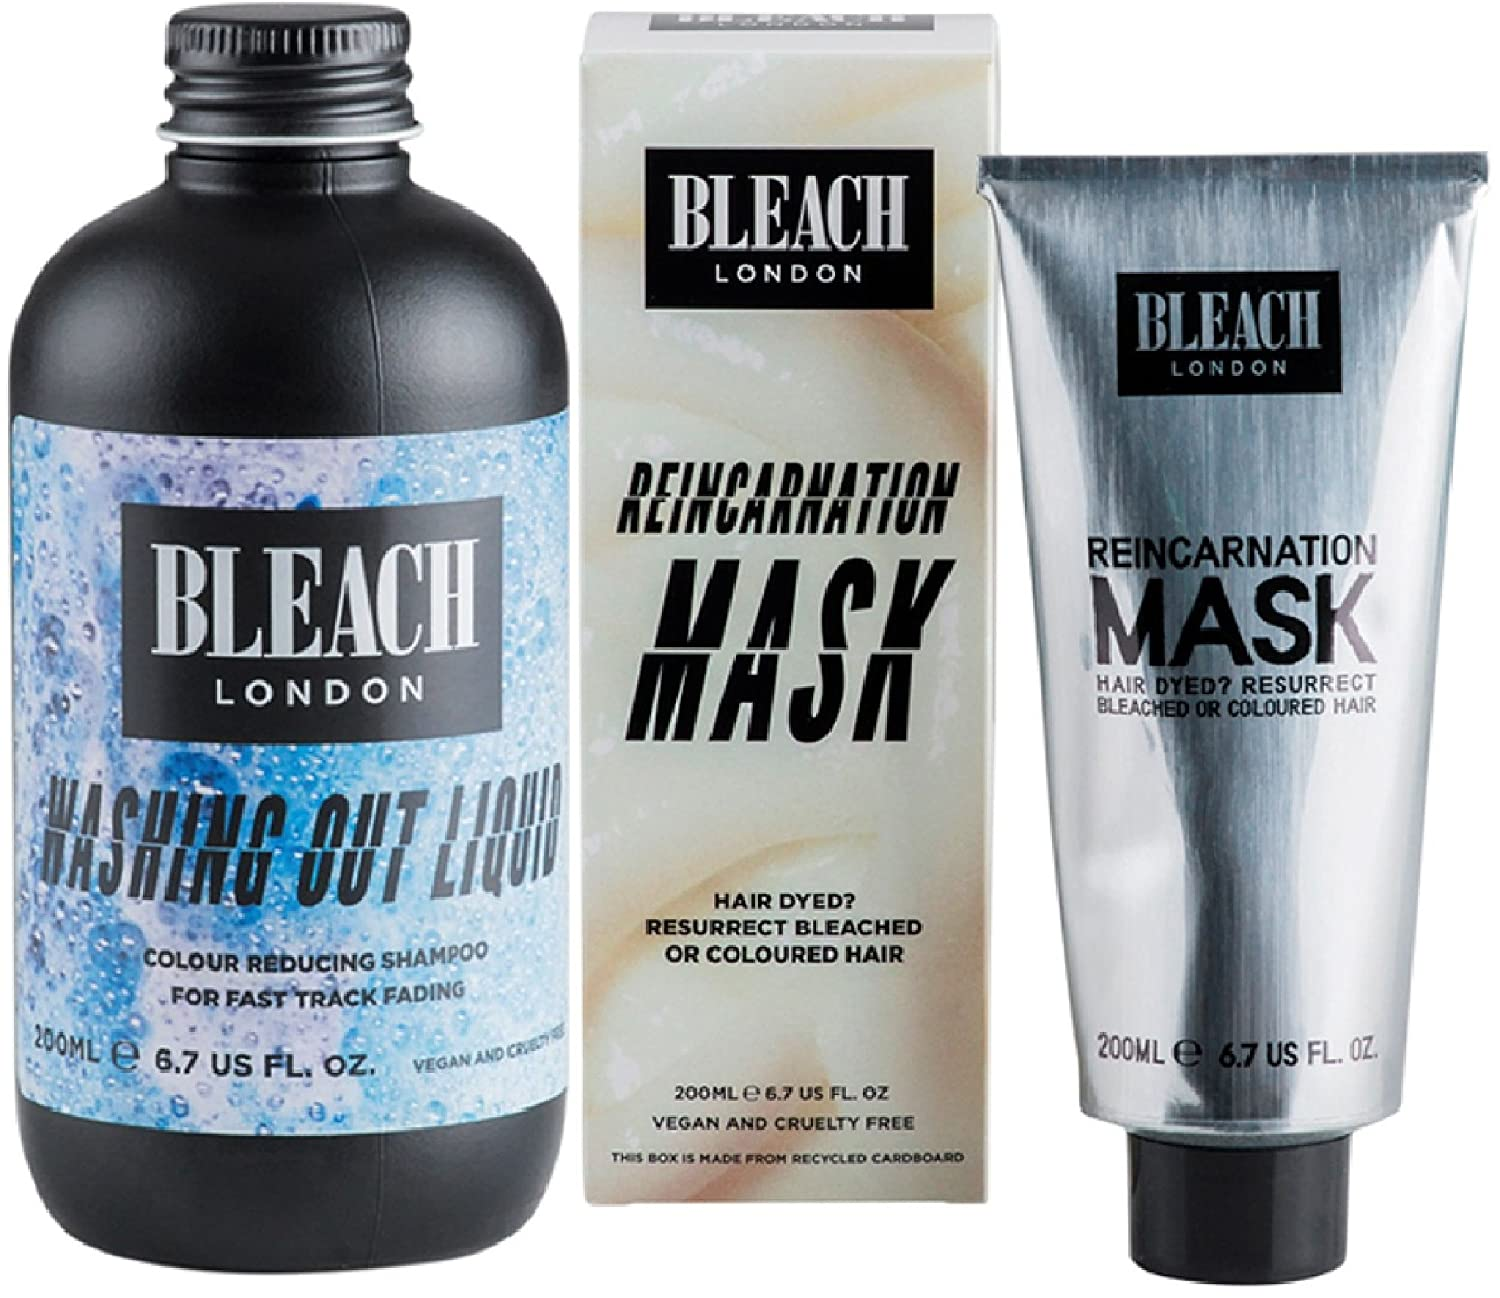 (2 PACK) Bleach London Washing Out Liquid 200ml & Bleach London Reincarnation Mask 200ml